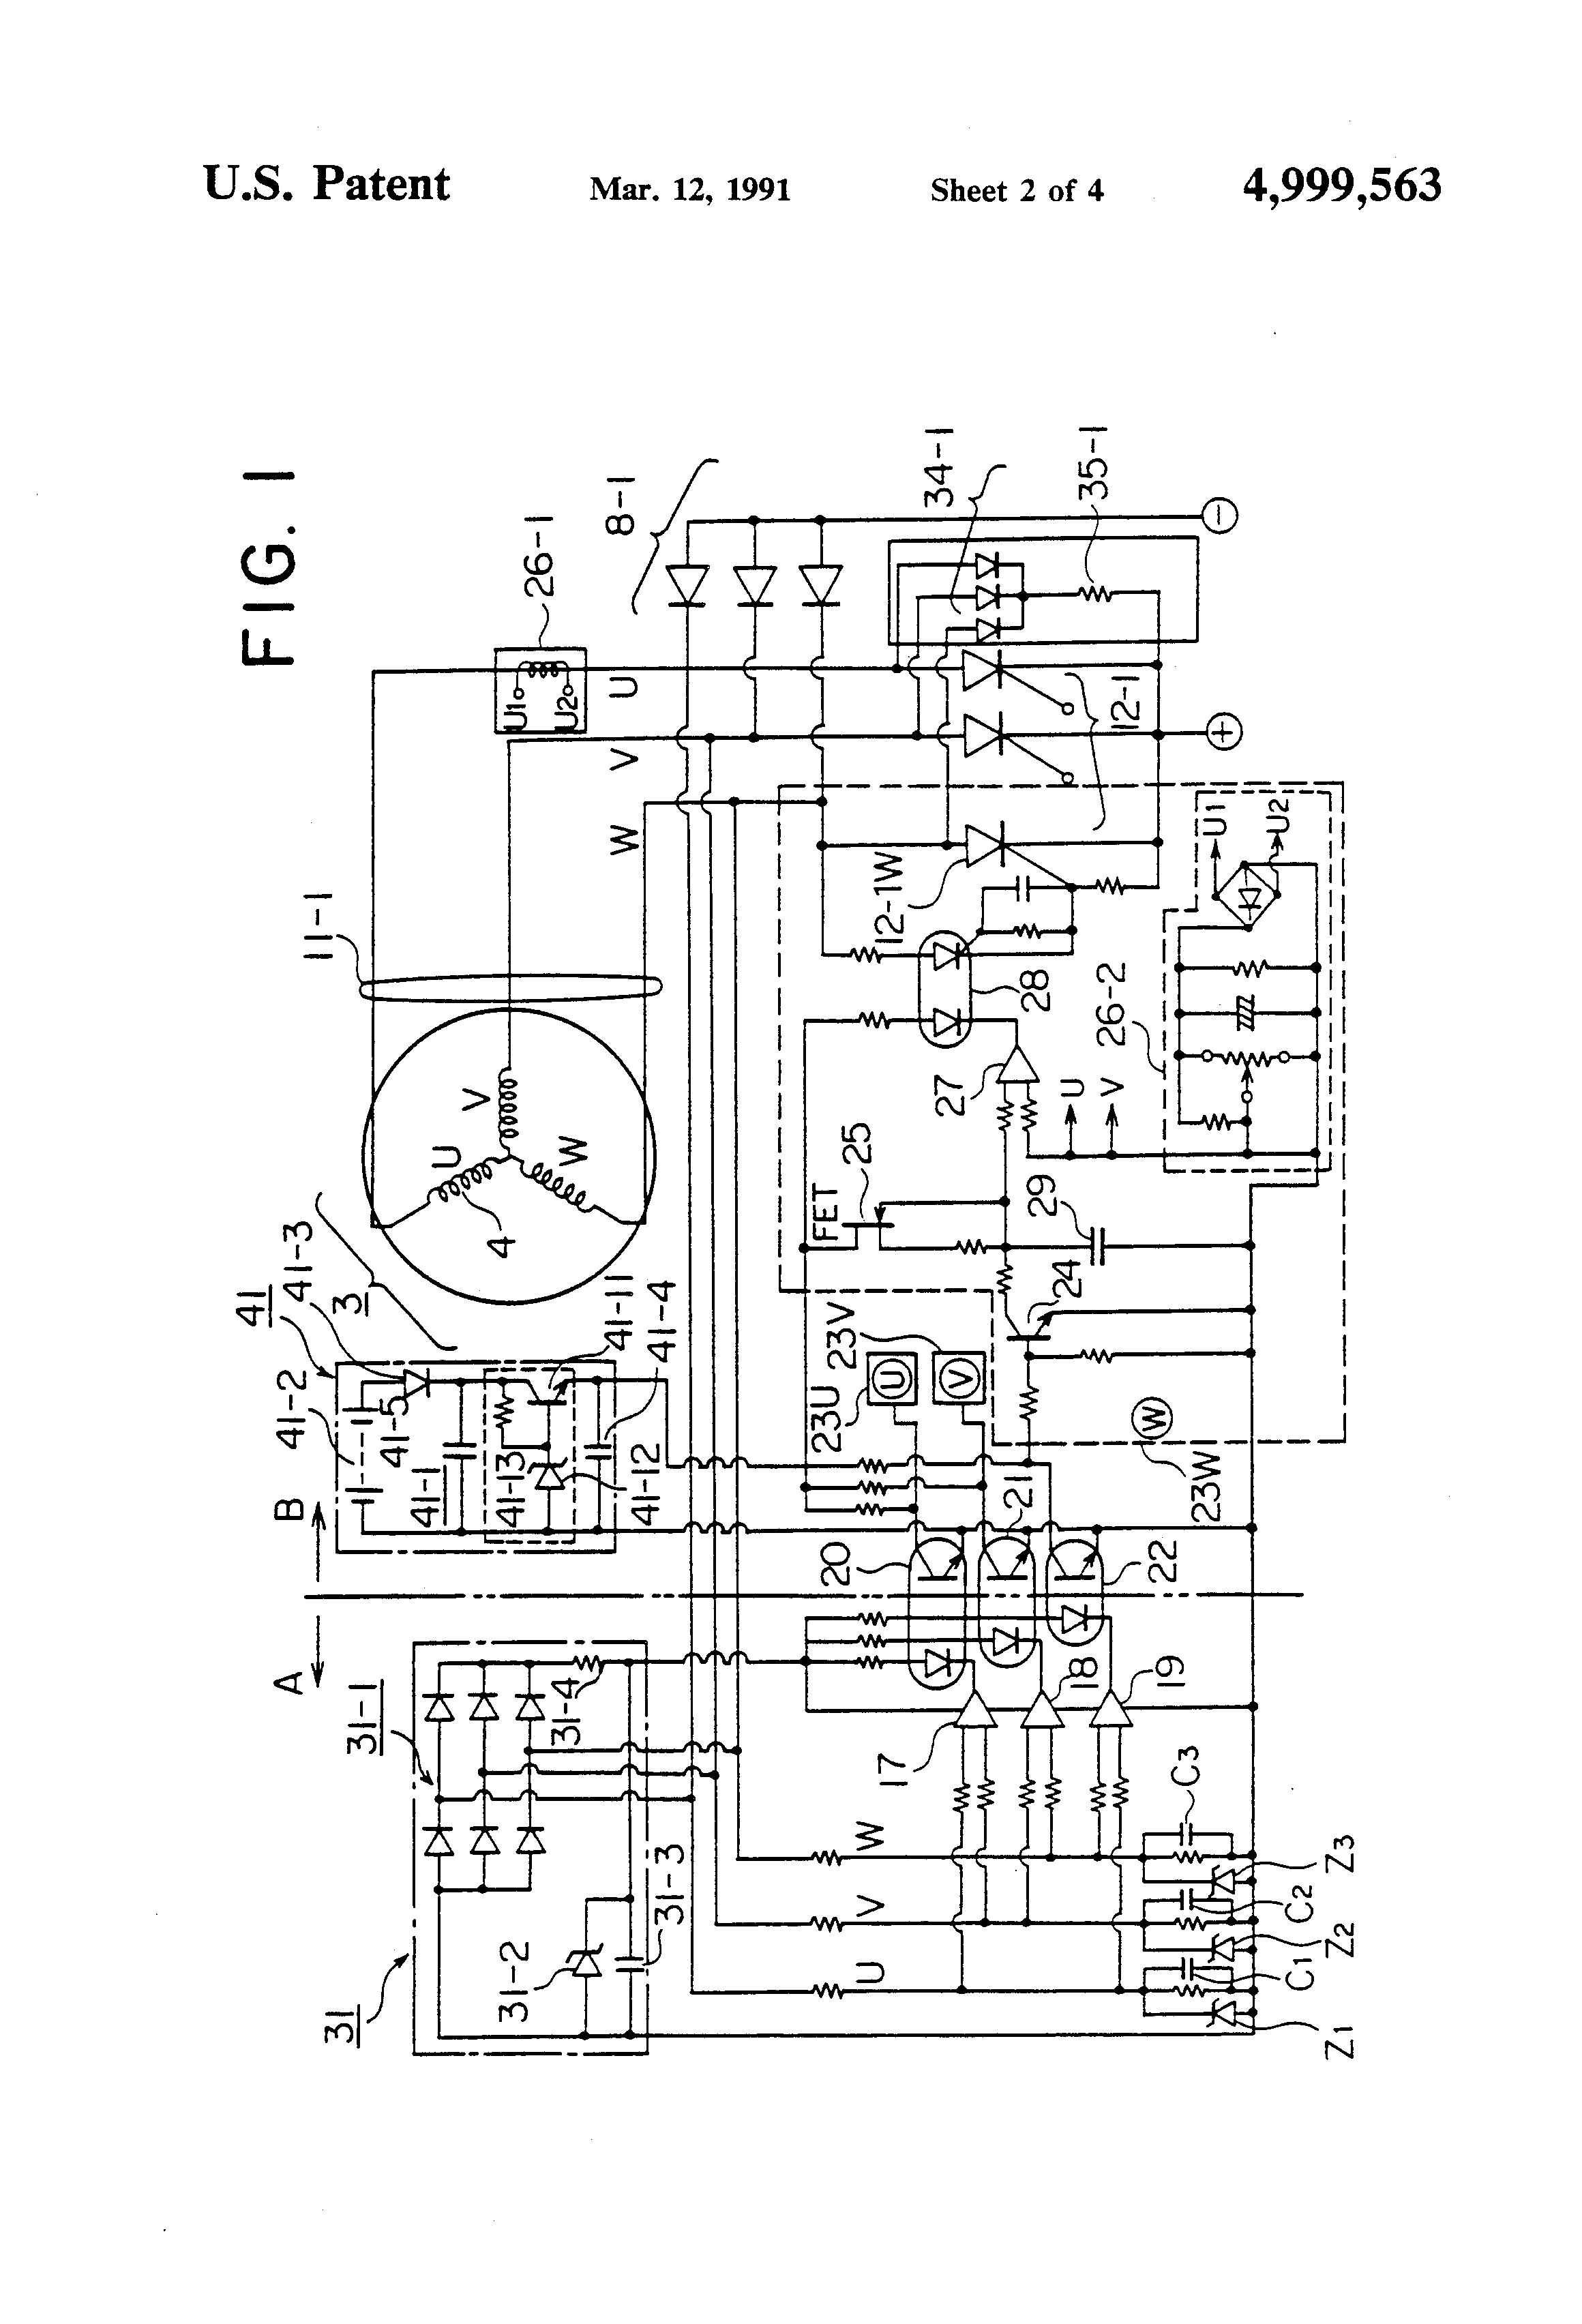 John Deere 4440 Air Conditioning Wiring Diagram 47 For Patent Us4999563 Separately Power Feeding Welding Generator Pertaining To Ac Electrical Diagrams Generatorresize